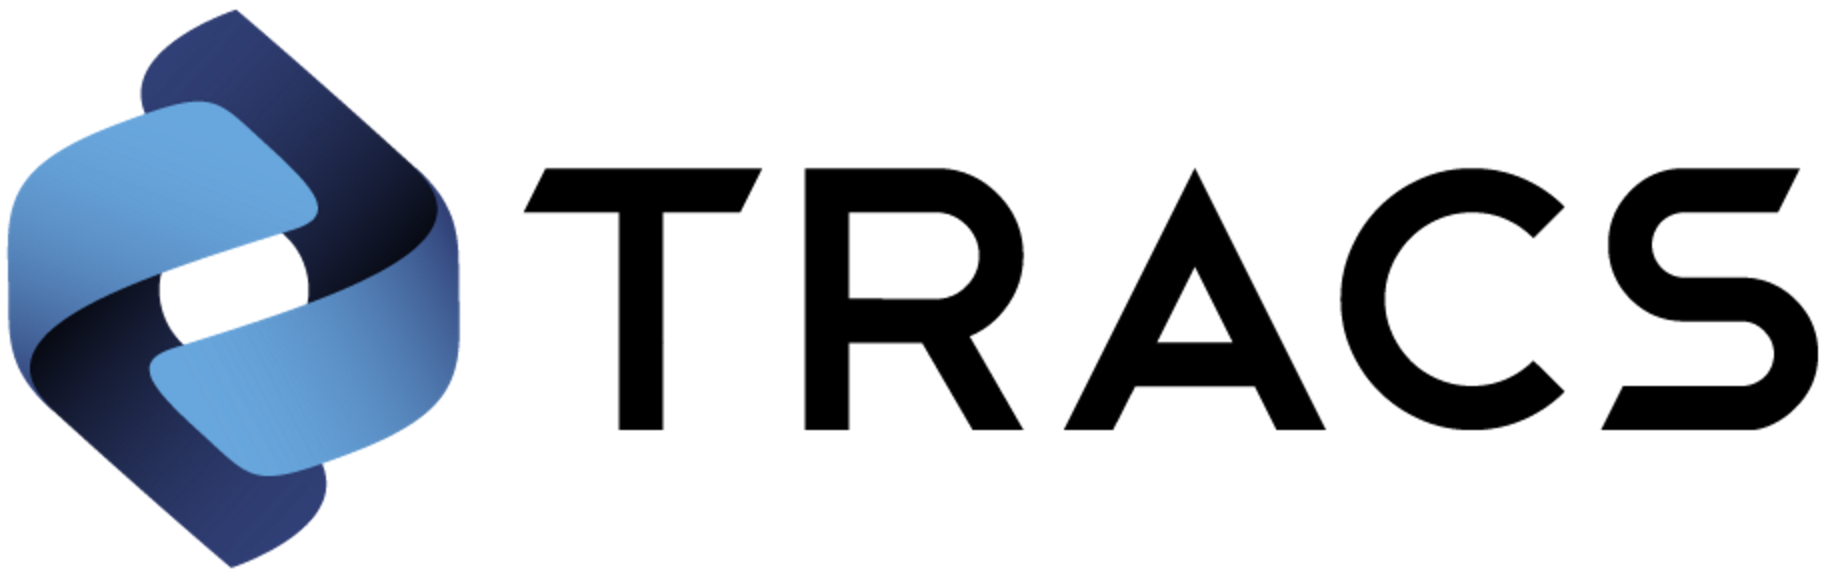 Tracservices